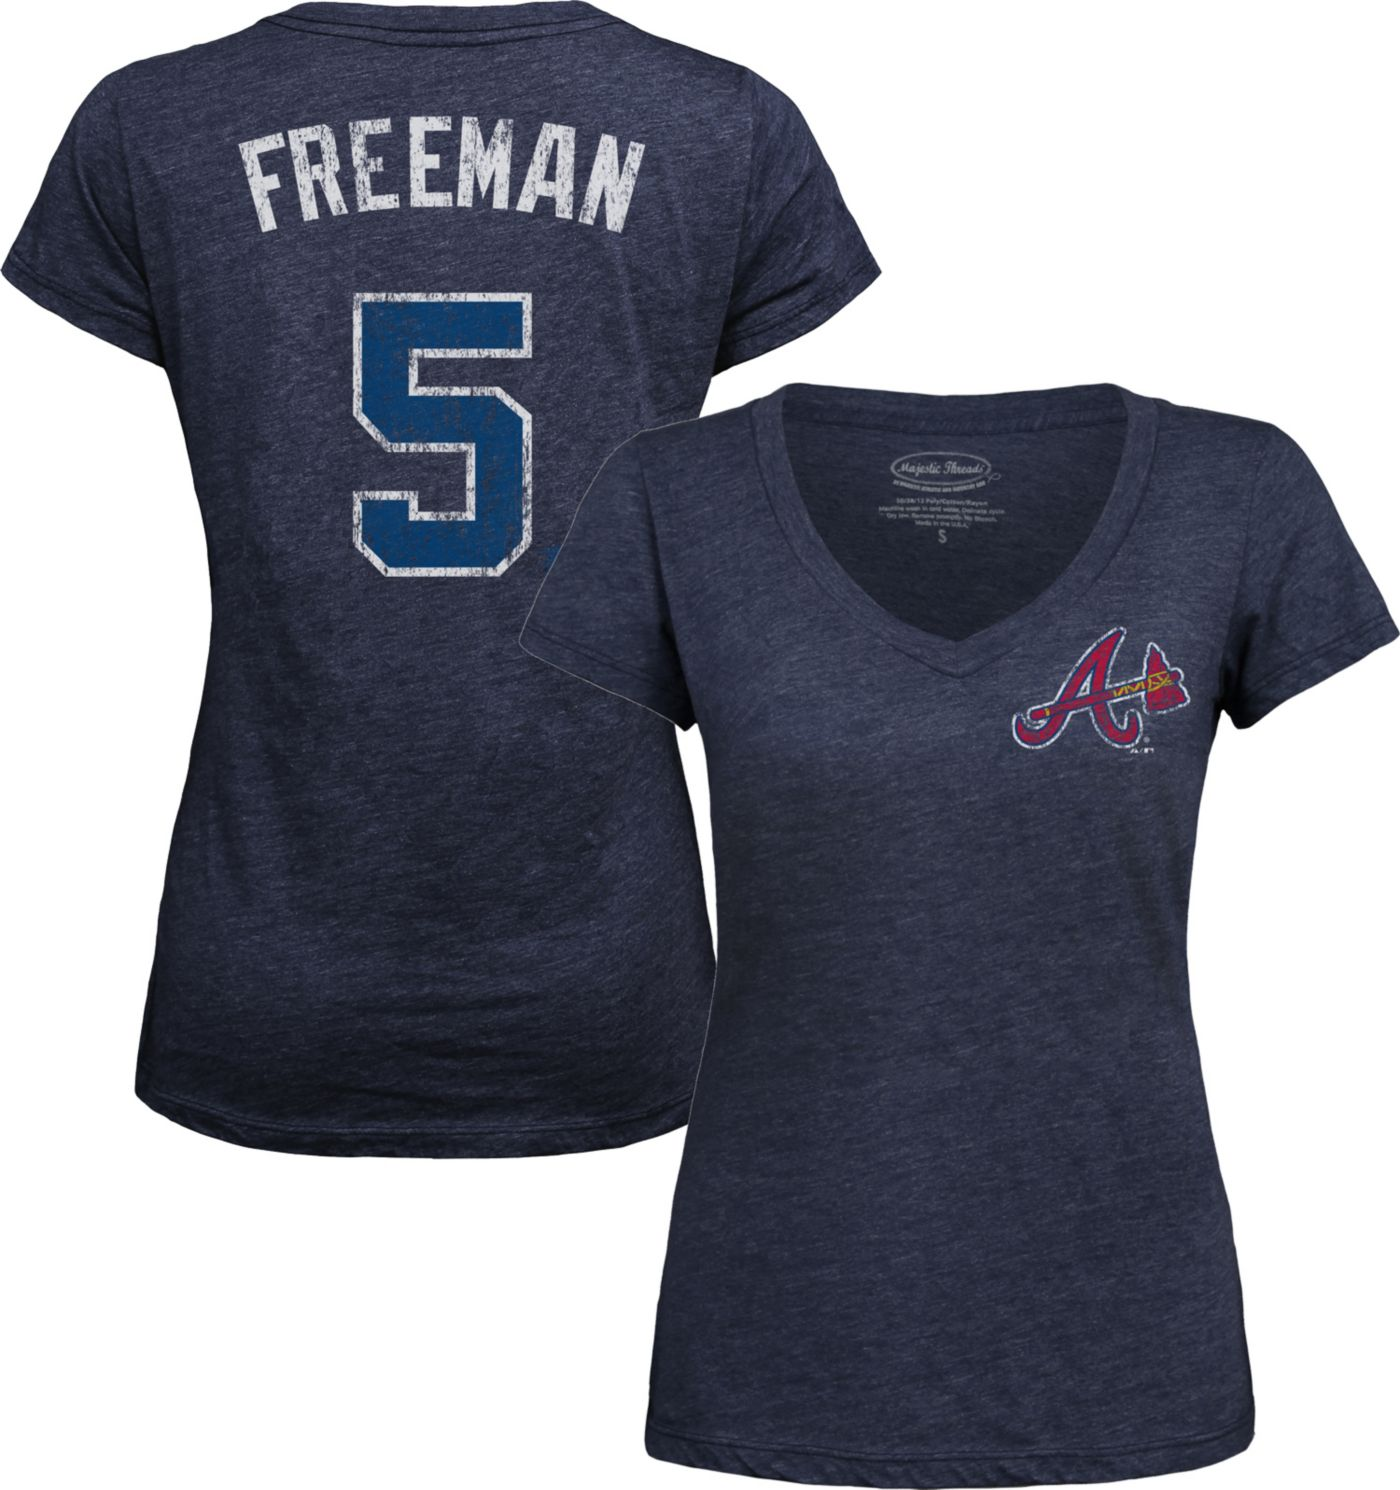 Majestic Threads Women's Atlanta Braves Freddie Freeman Navy V-Neck T-Shirt